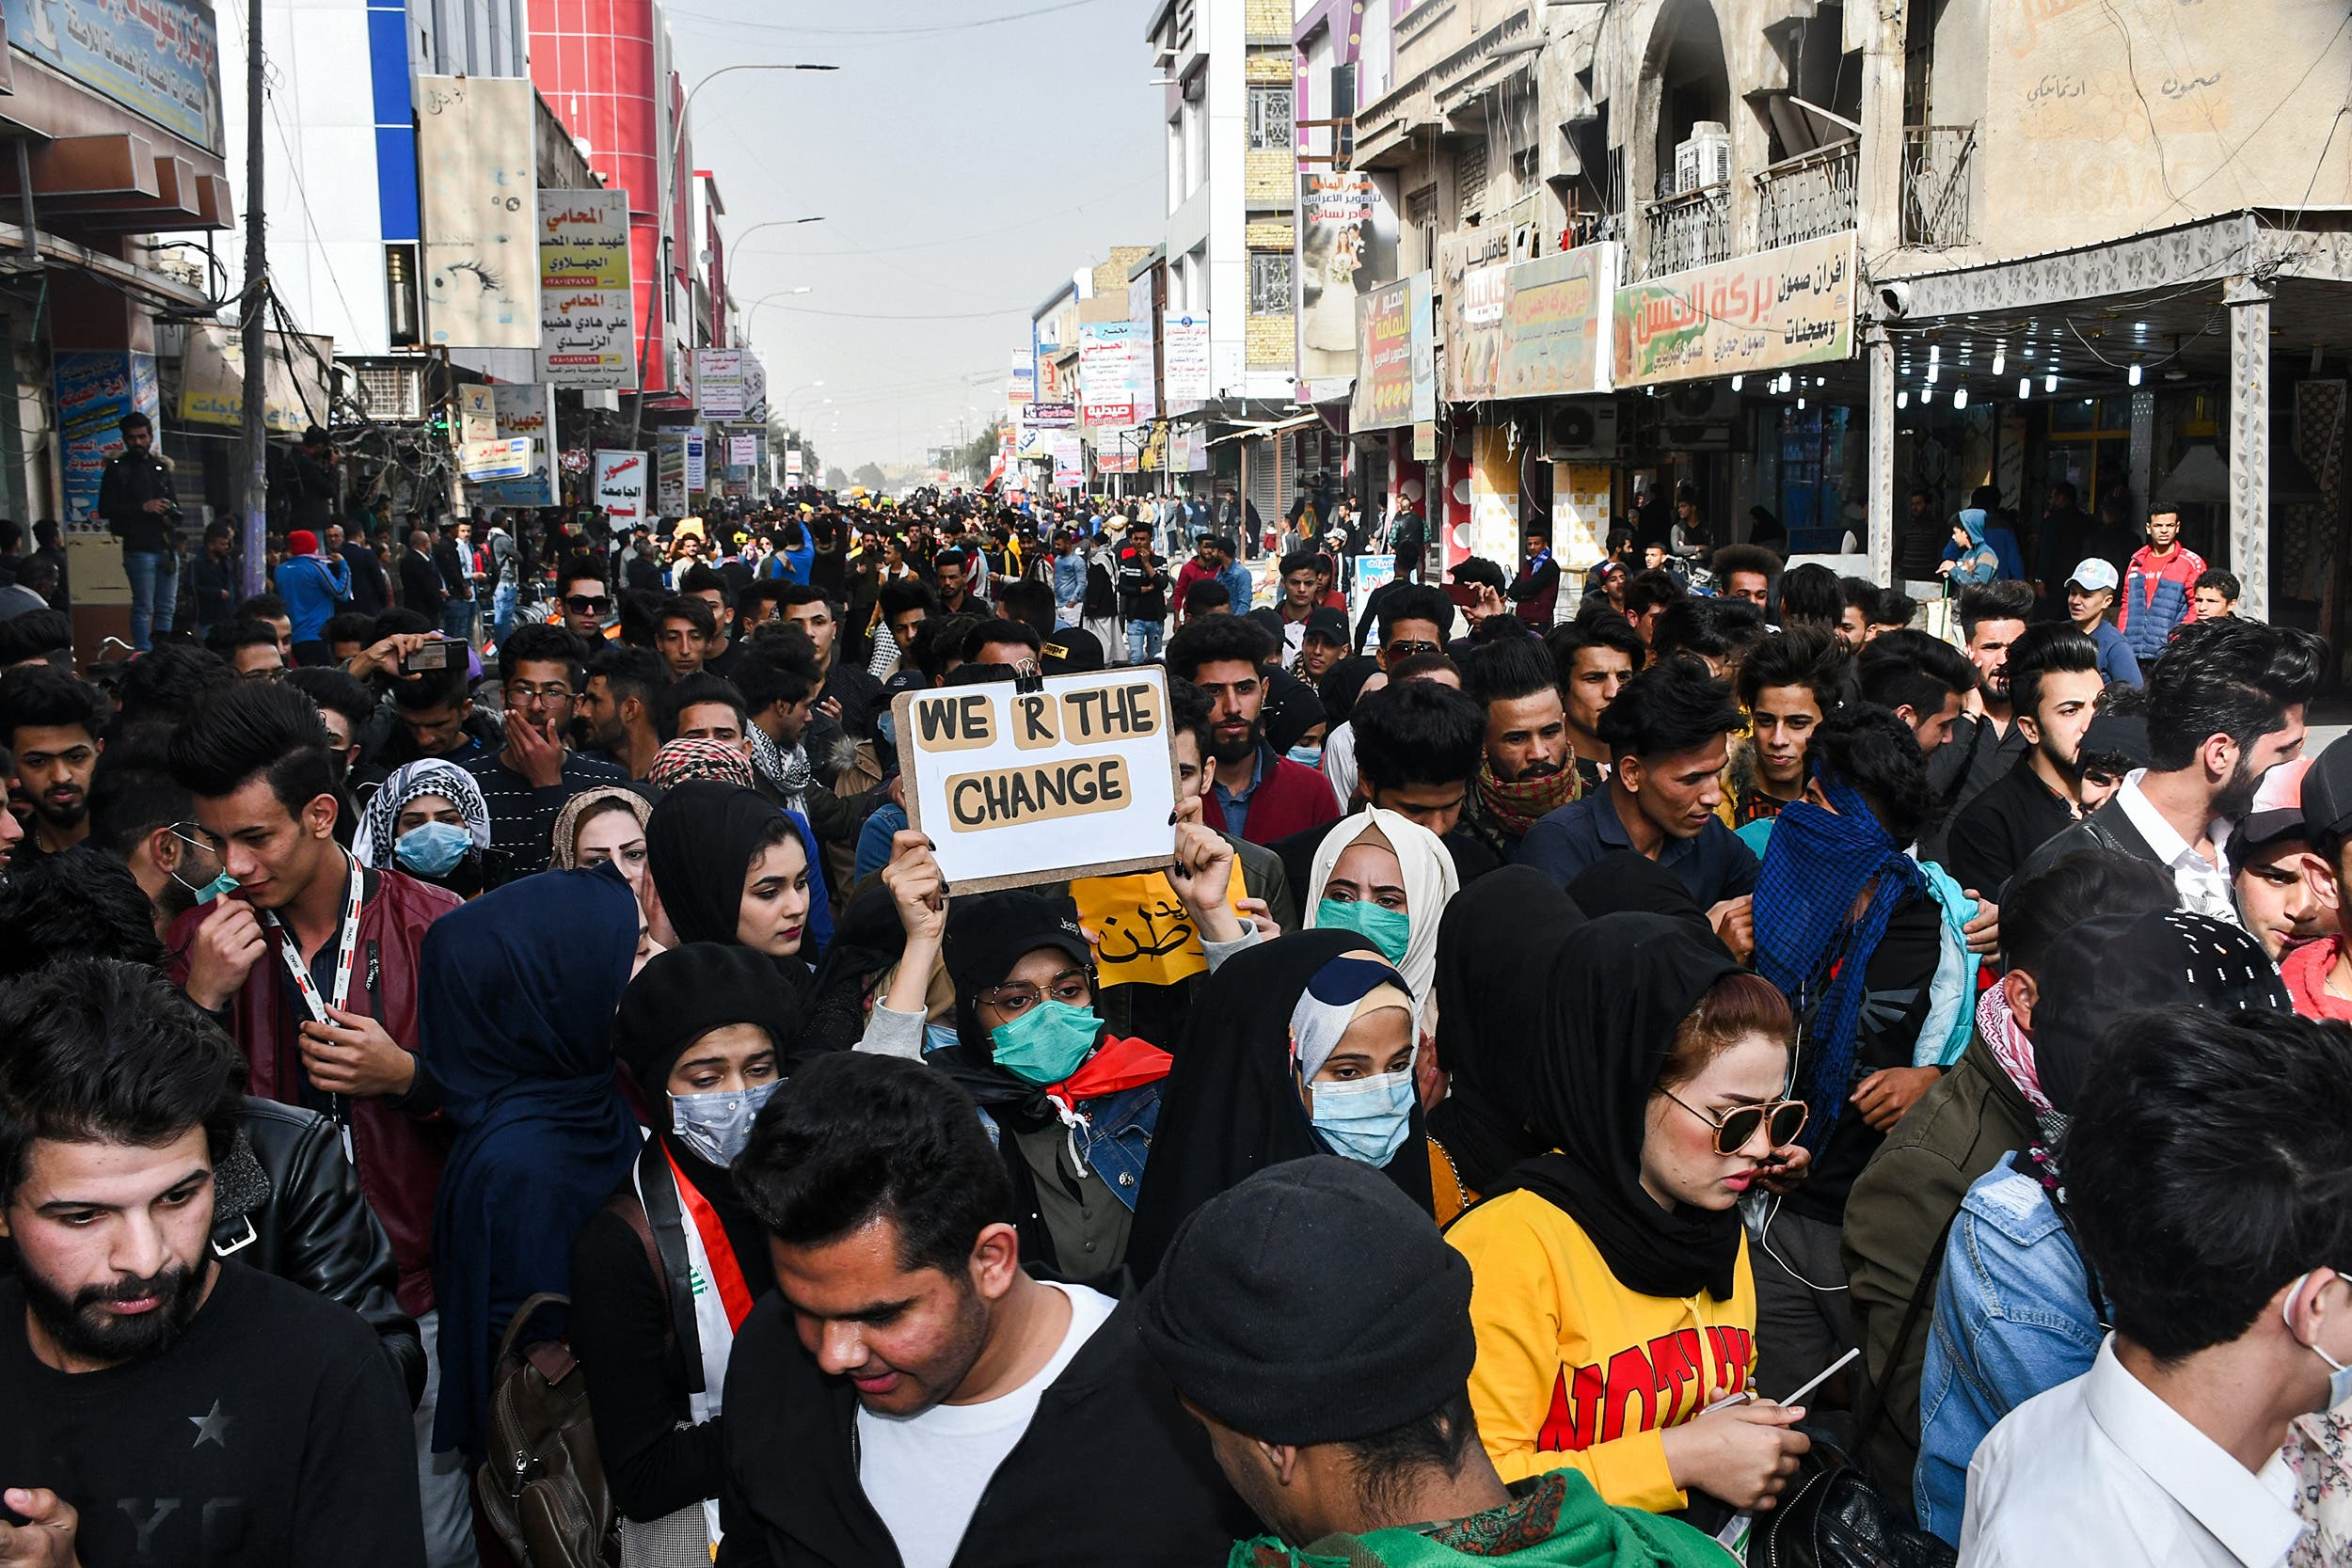 Student protesters call for a strike as they gather during an anti-government demonstration in the southern Iraqi city of Nasiriyah in Dhi Qar province. (AFP)